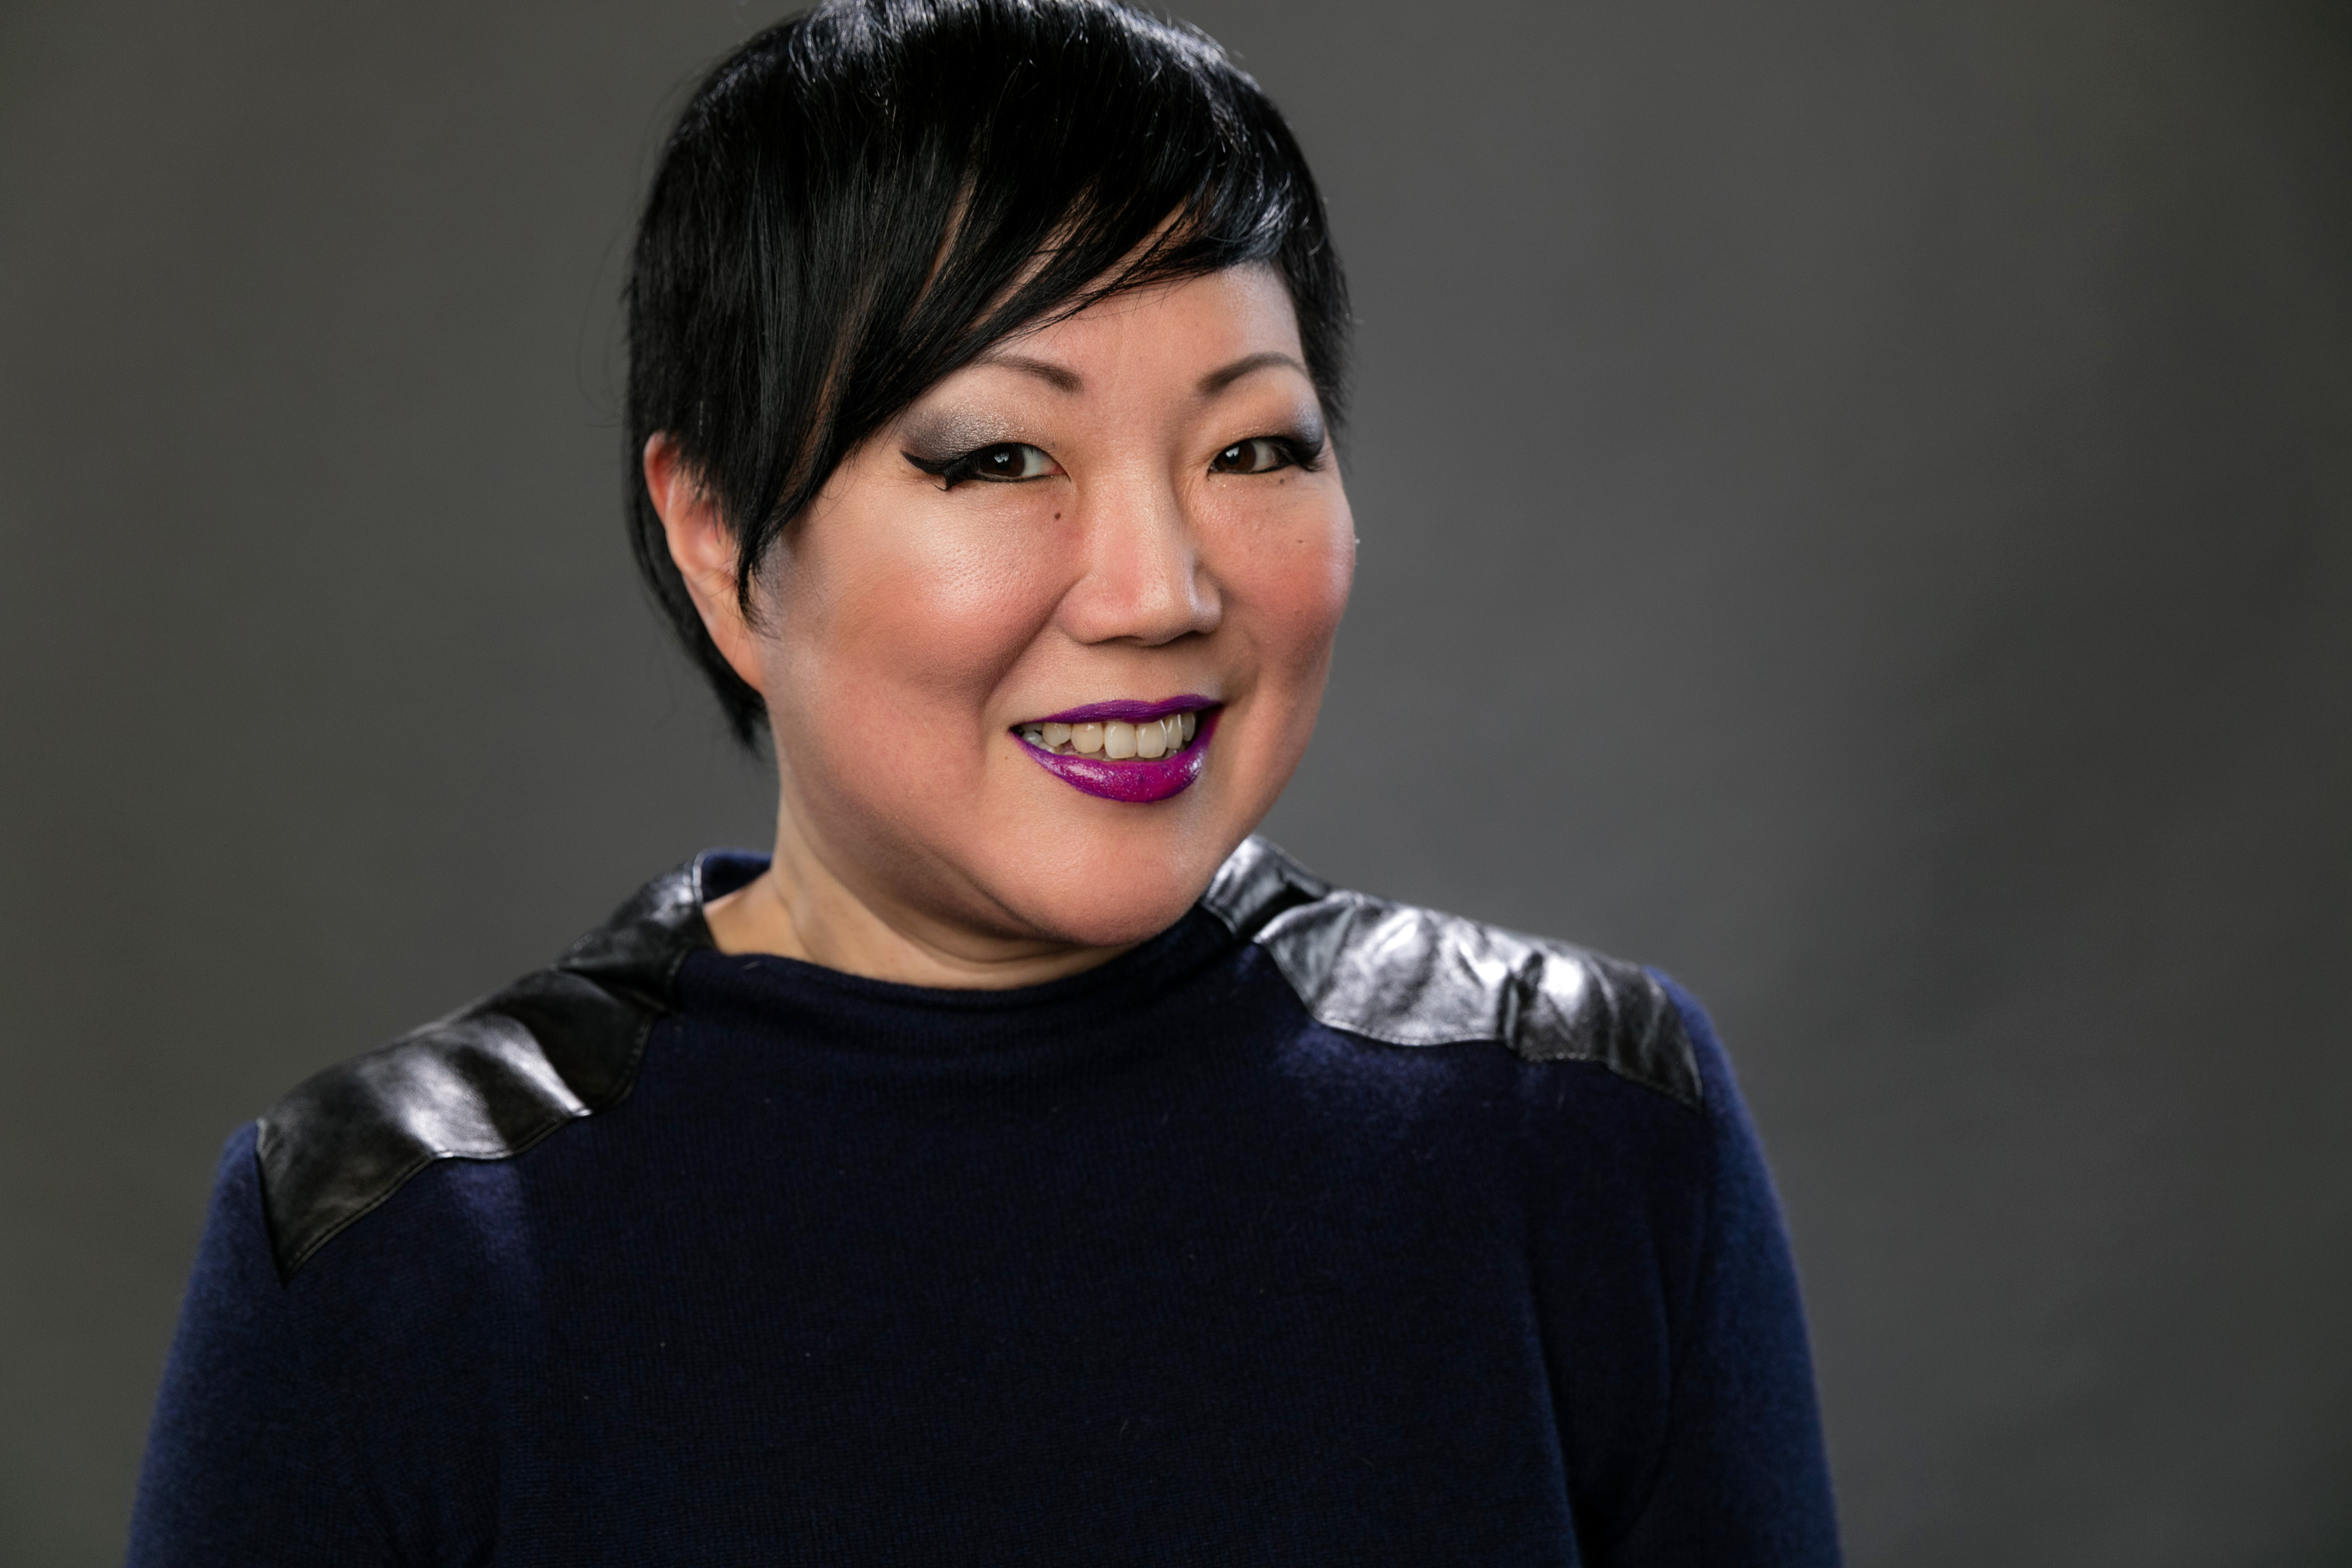 Comedian Margaret Cho poses for a portrait during the NBCUniversal Press Day at The Langham Huntington, Pasadena on January 14, 2016 in Pasadena, California.